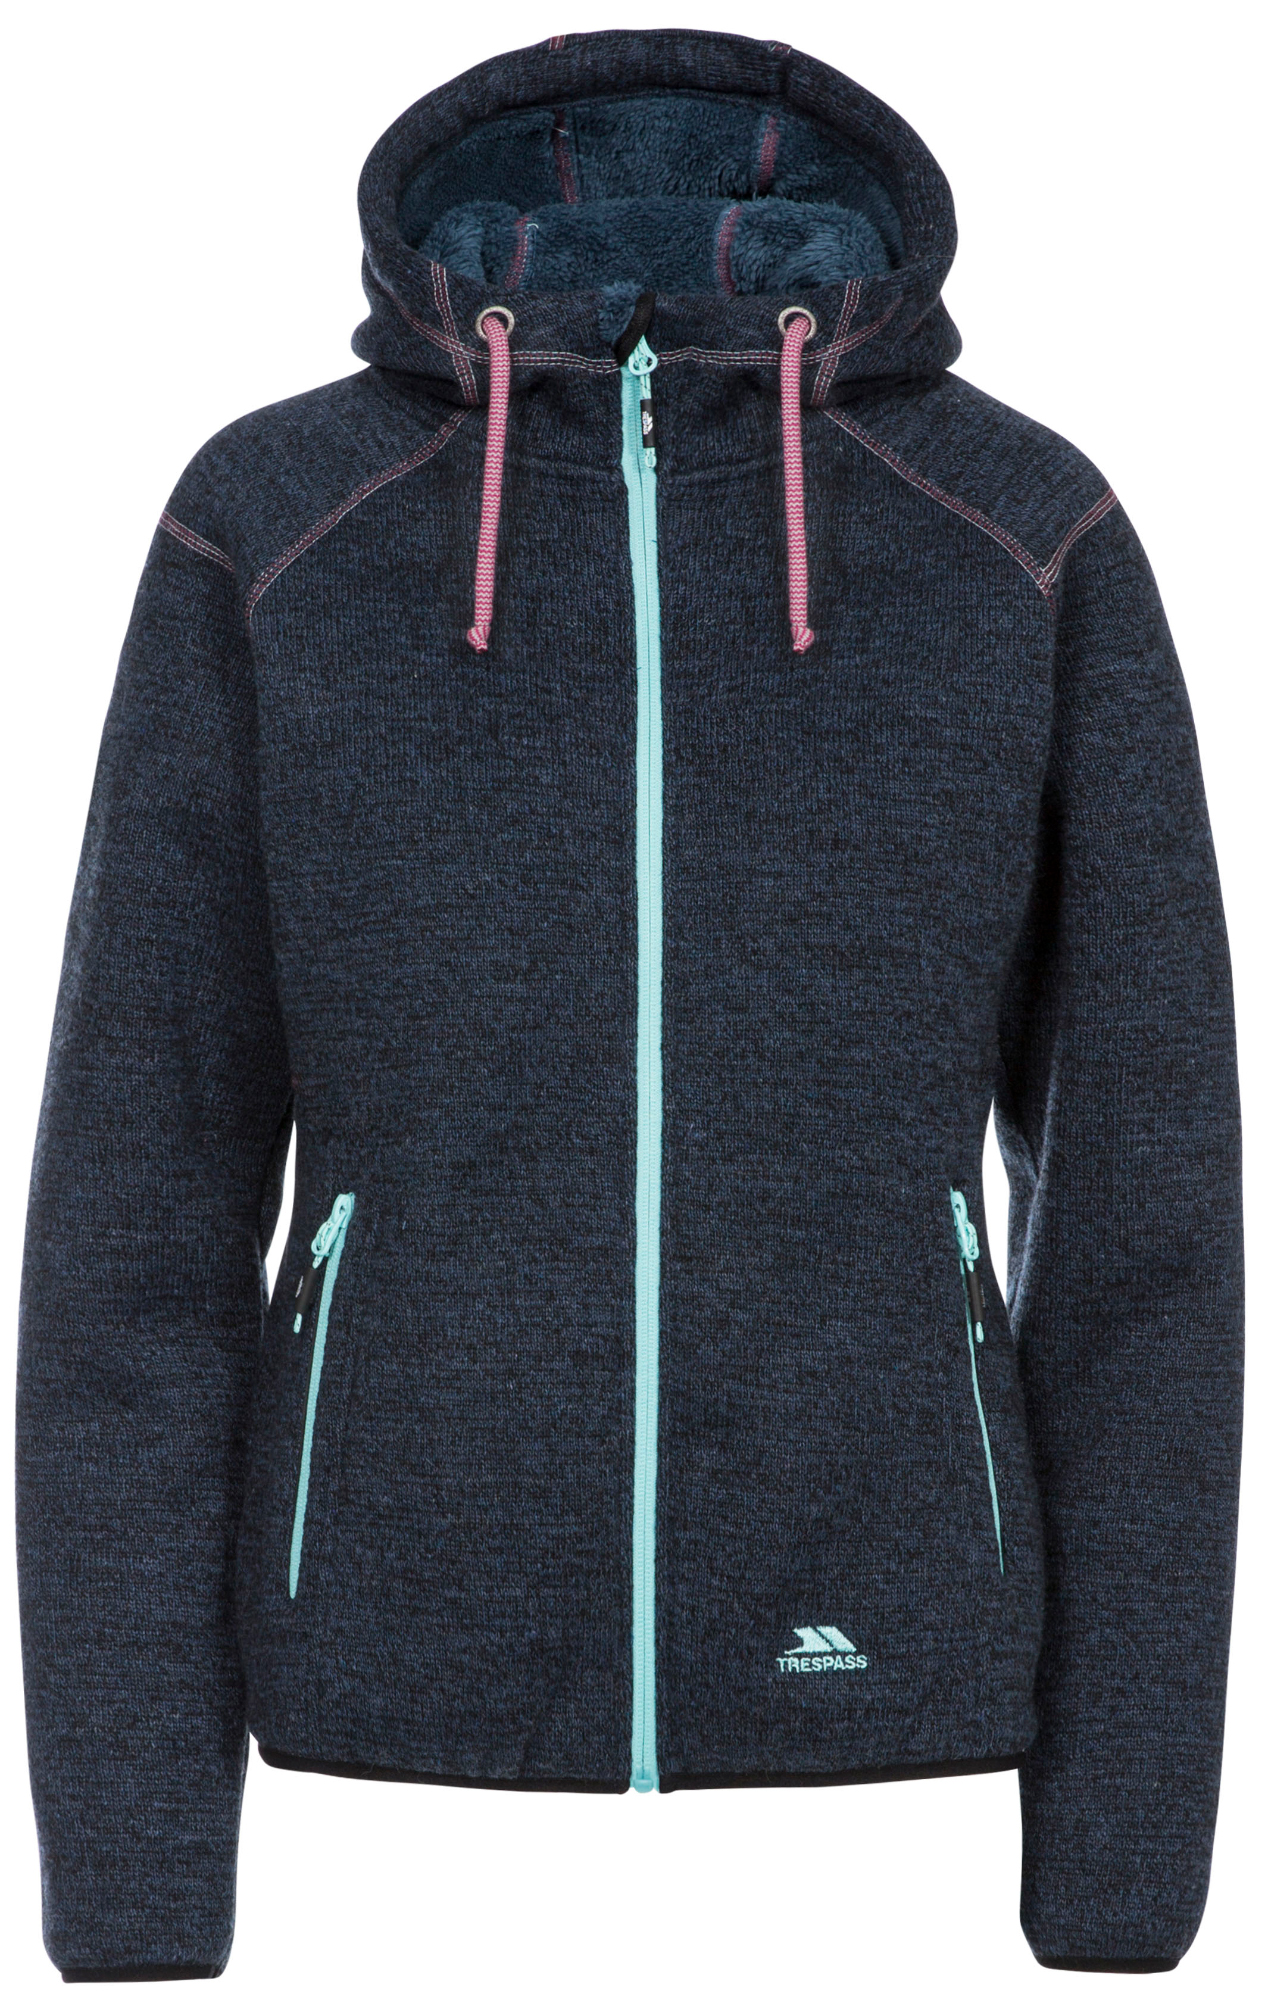 Trespass Albatross - Fleece jakke dame - Navy marl | Jackets